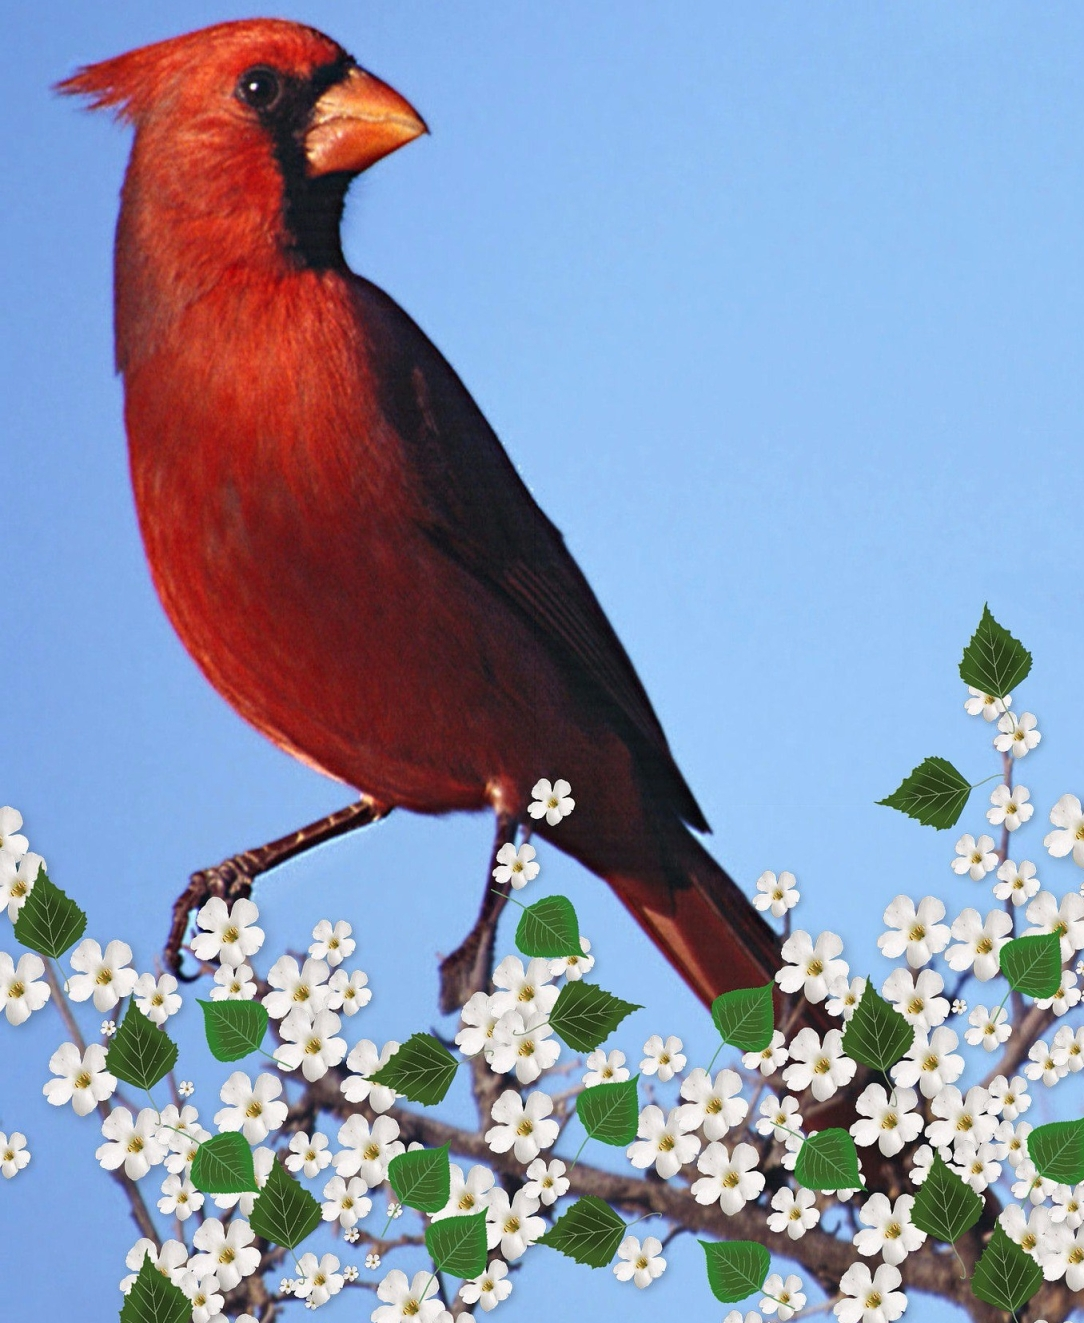 confidence, monogamy, relationships, love, power dynamics, cardinal, cardinal art, cardinal omen, bird omen, animal omen, signs, cherry blossoms